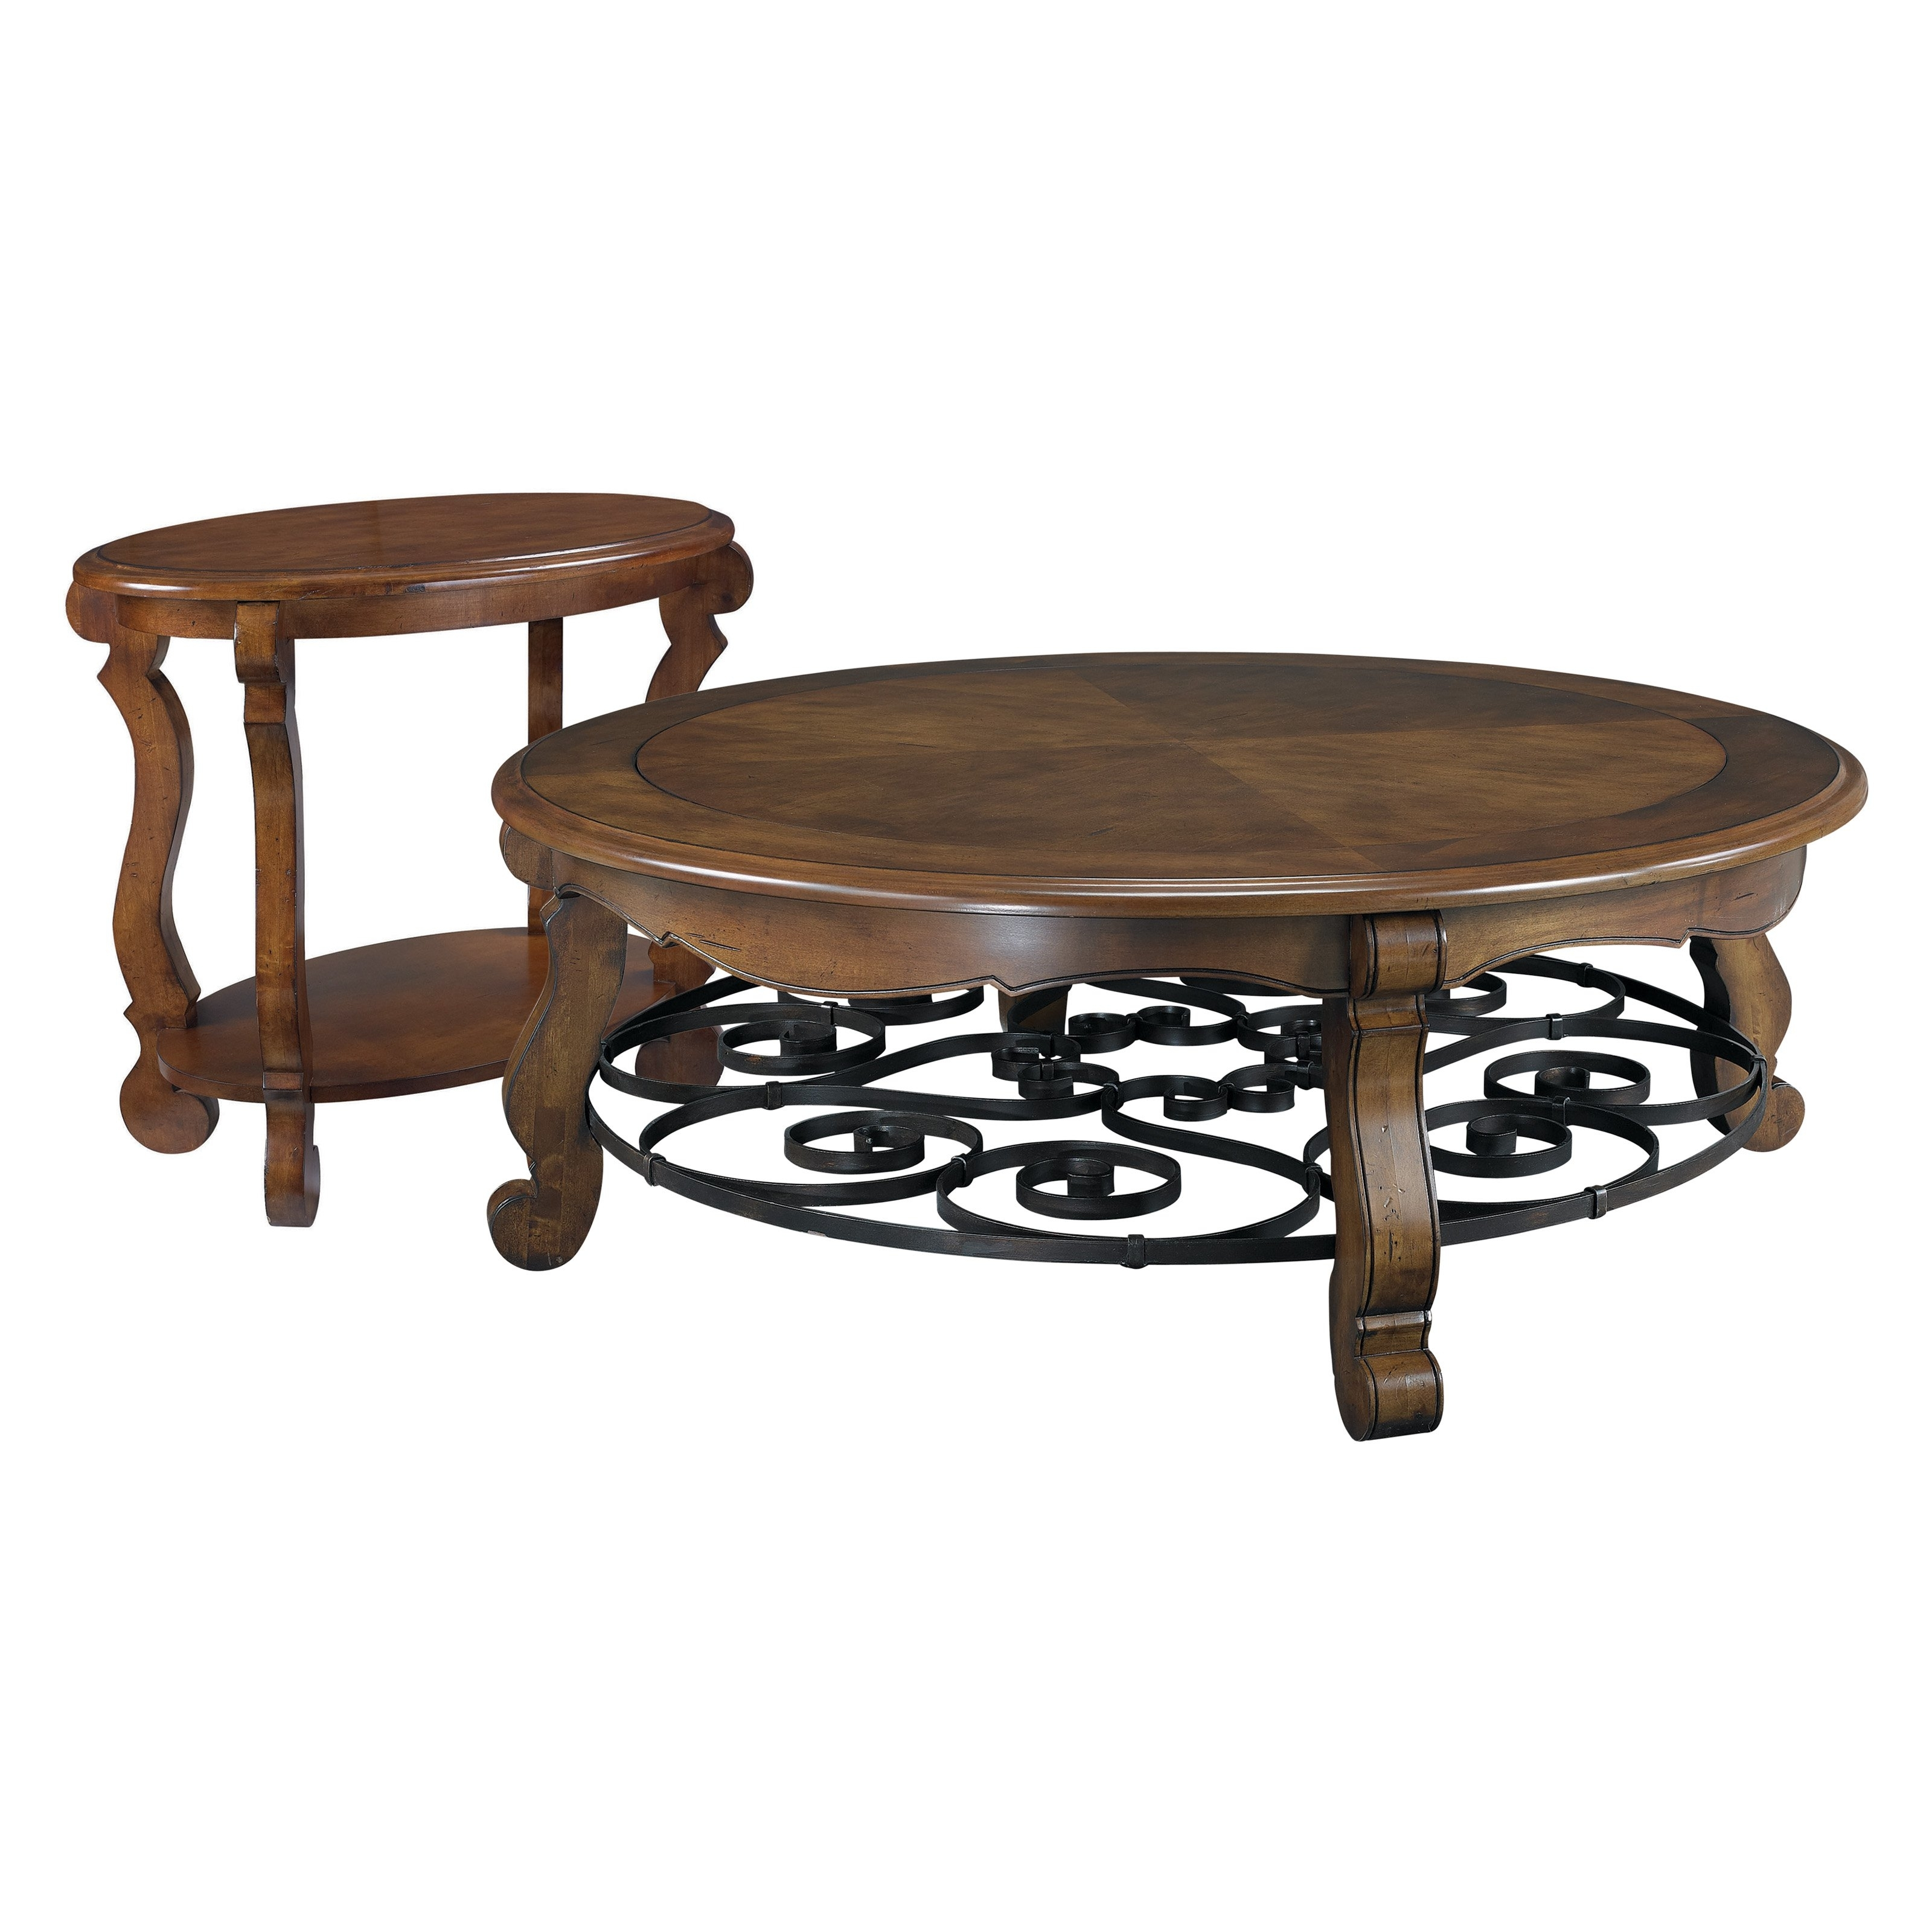 Hammary Siena Round 2 Piece Glass Top Coffee Table Set | Round Pertaining To Smart Glass Top Coffee Tables (View 17 of 30)